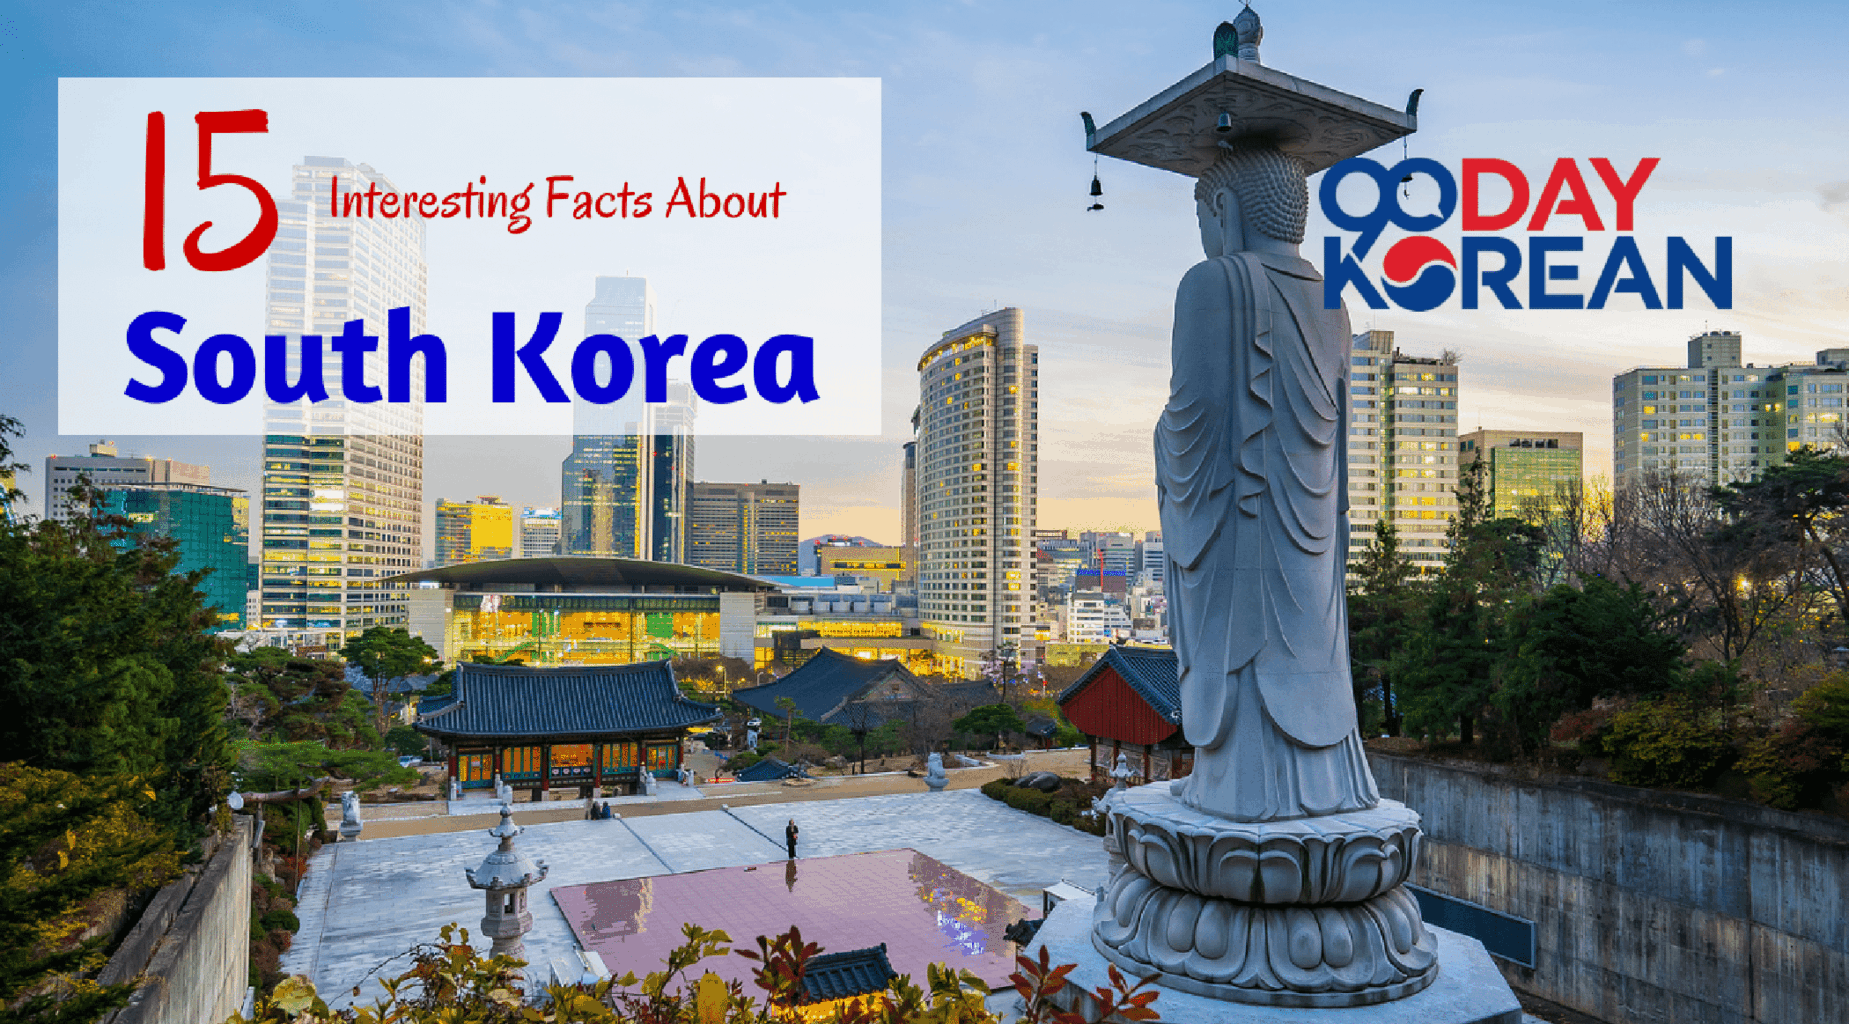 15 Interesting Facts About South Korea